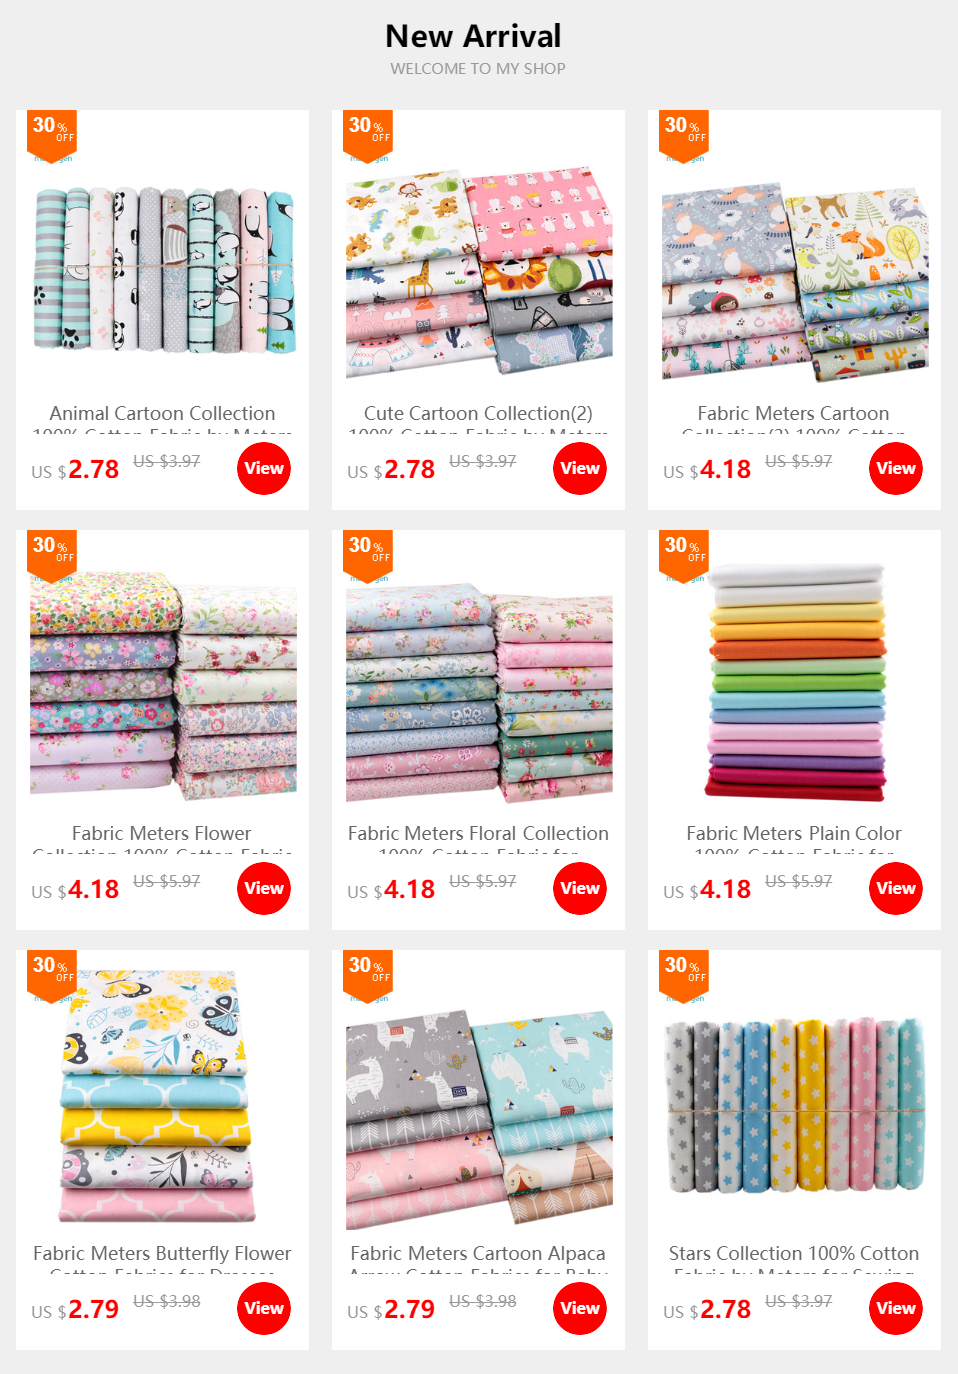 Hae2b68c77da04cc5bc412894f622c986J 20cmx25cm and 25cmx25cm Cotton Fabric Printed Cloth Sewing Quilting Fabrics for Patchwork Needlework DIY Handmade Material